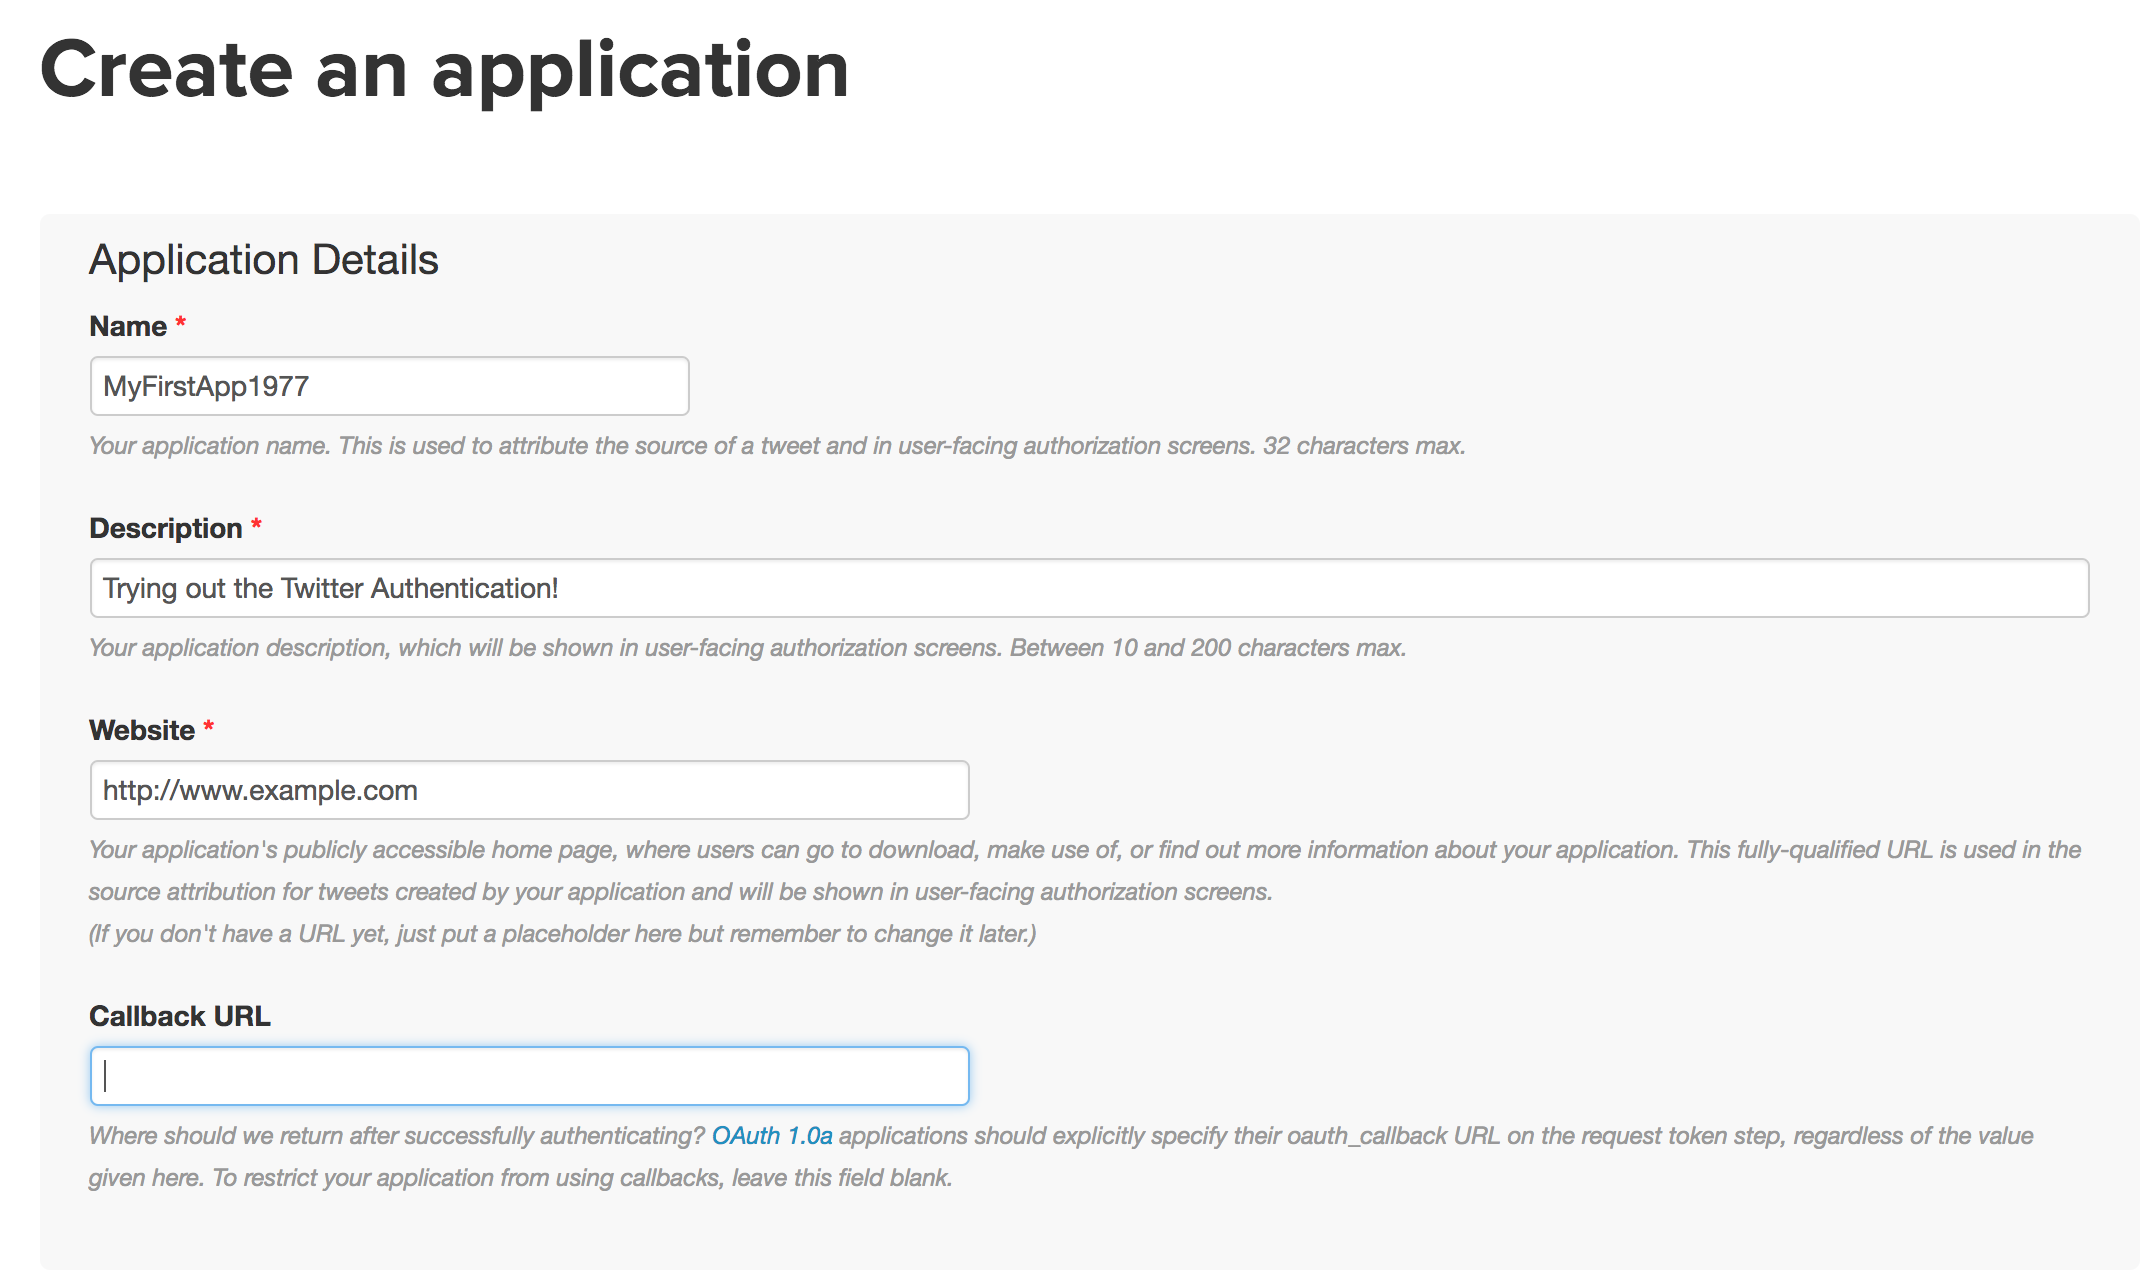 Creating a Twitter Application for Programmatic Access with Twython